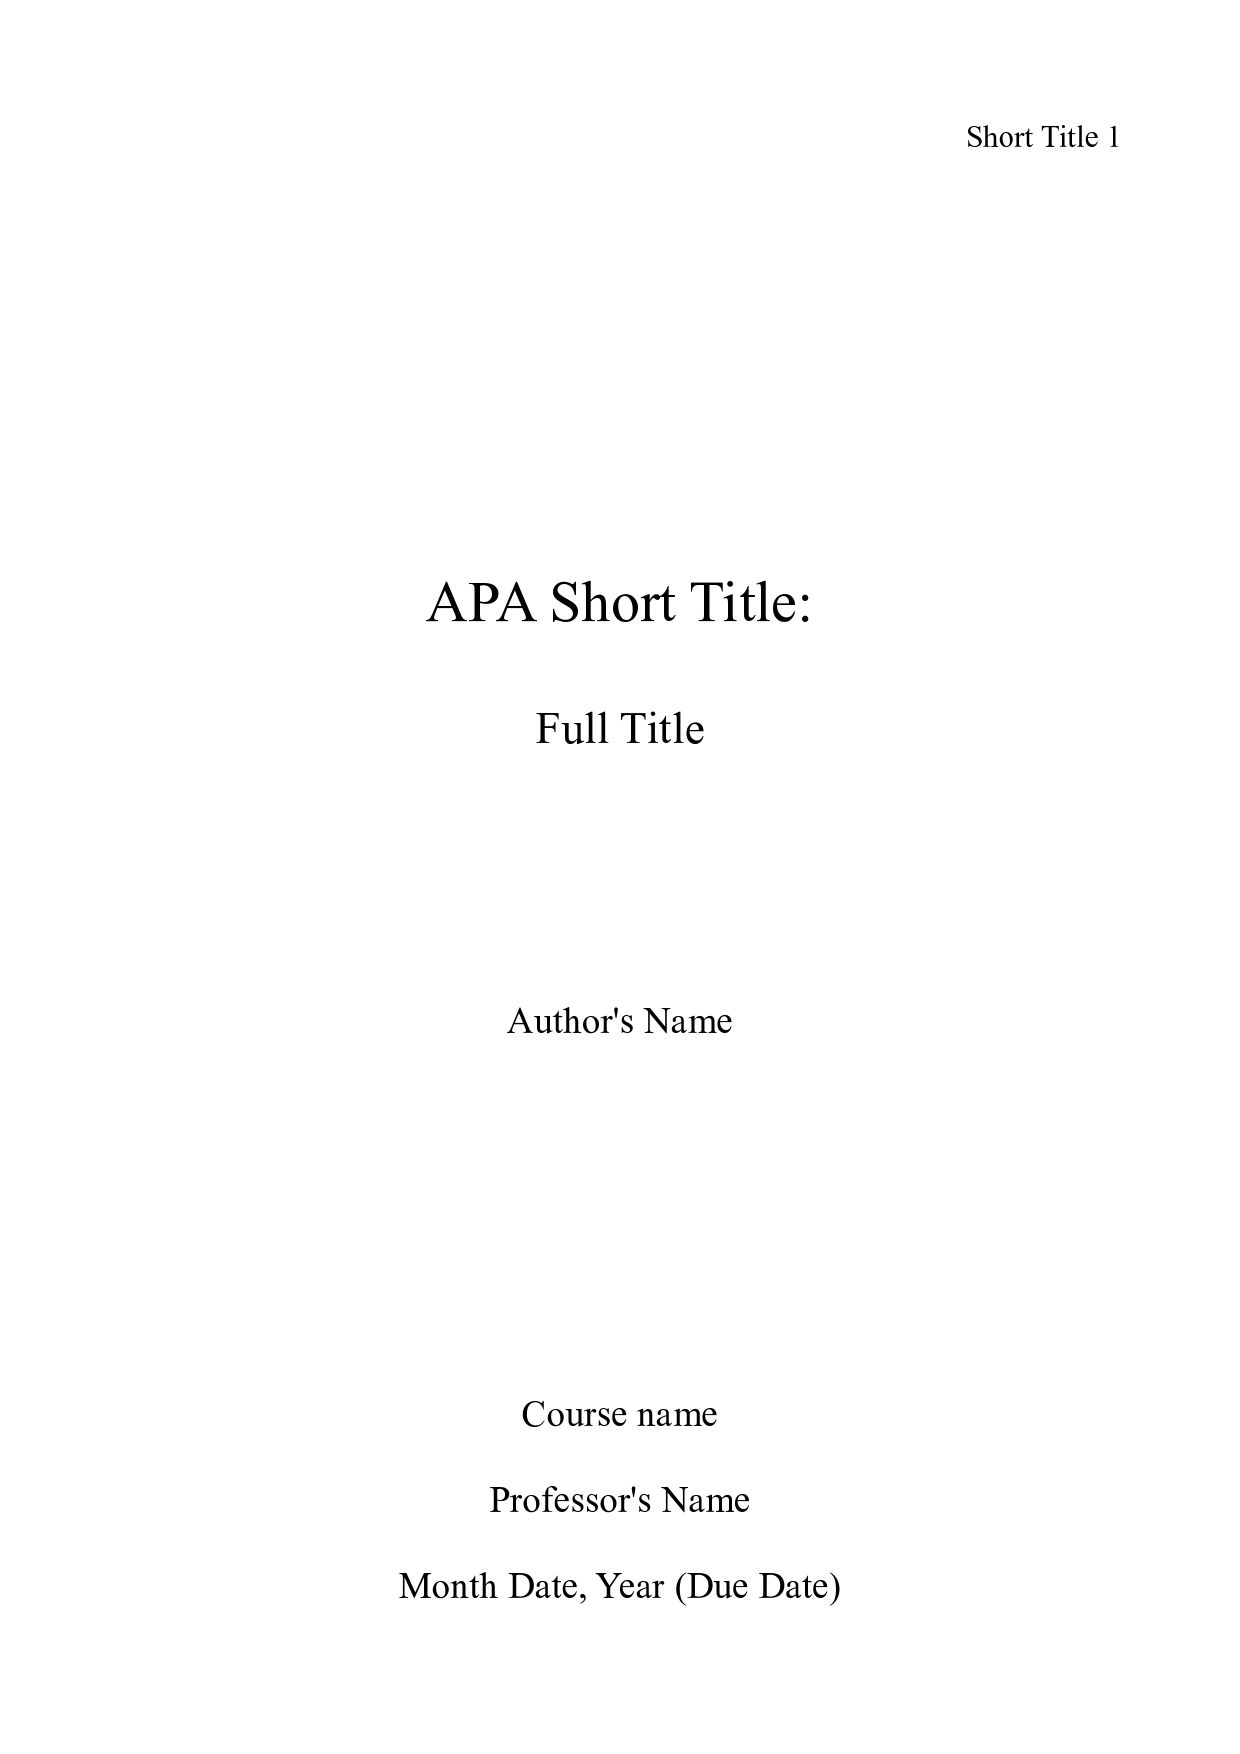 004 Cover Page For Research Wondrous A Paper Apa Style Format Turabian Full